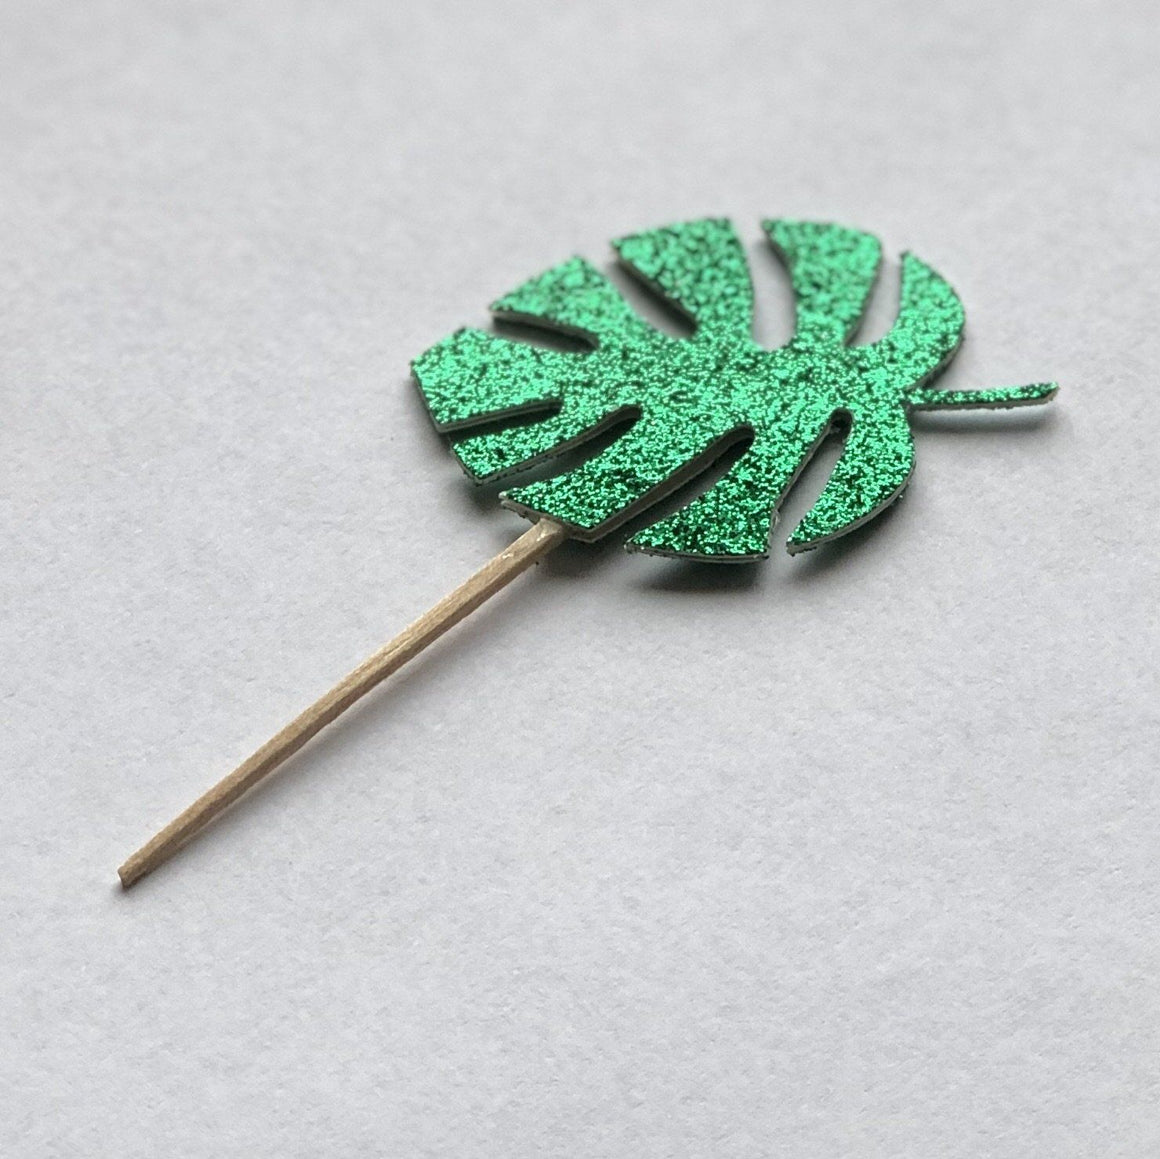 PARTY PICKS - MONSTERA TROPICAL LEAF GREEN 2-SIDED, Picks + Toppers, BON + CO - Bon + Co. Party Studio